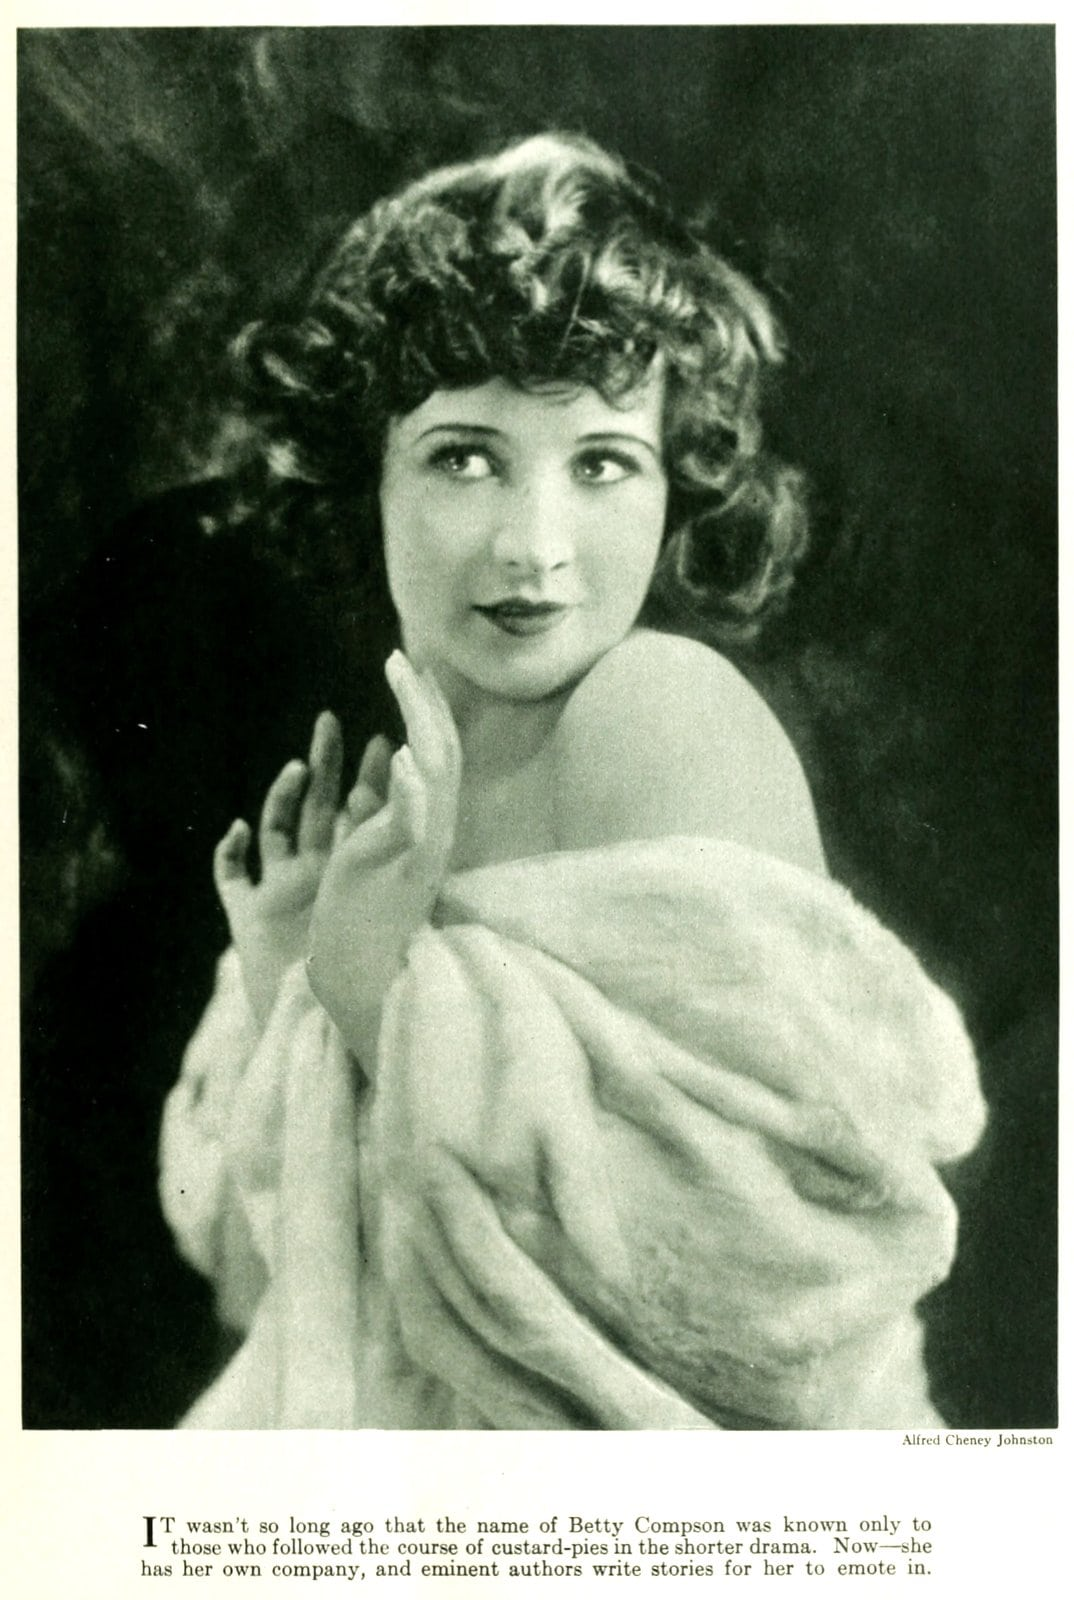 Old-fashioned 1920s womens hairstyles - actress Betty Compton